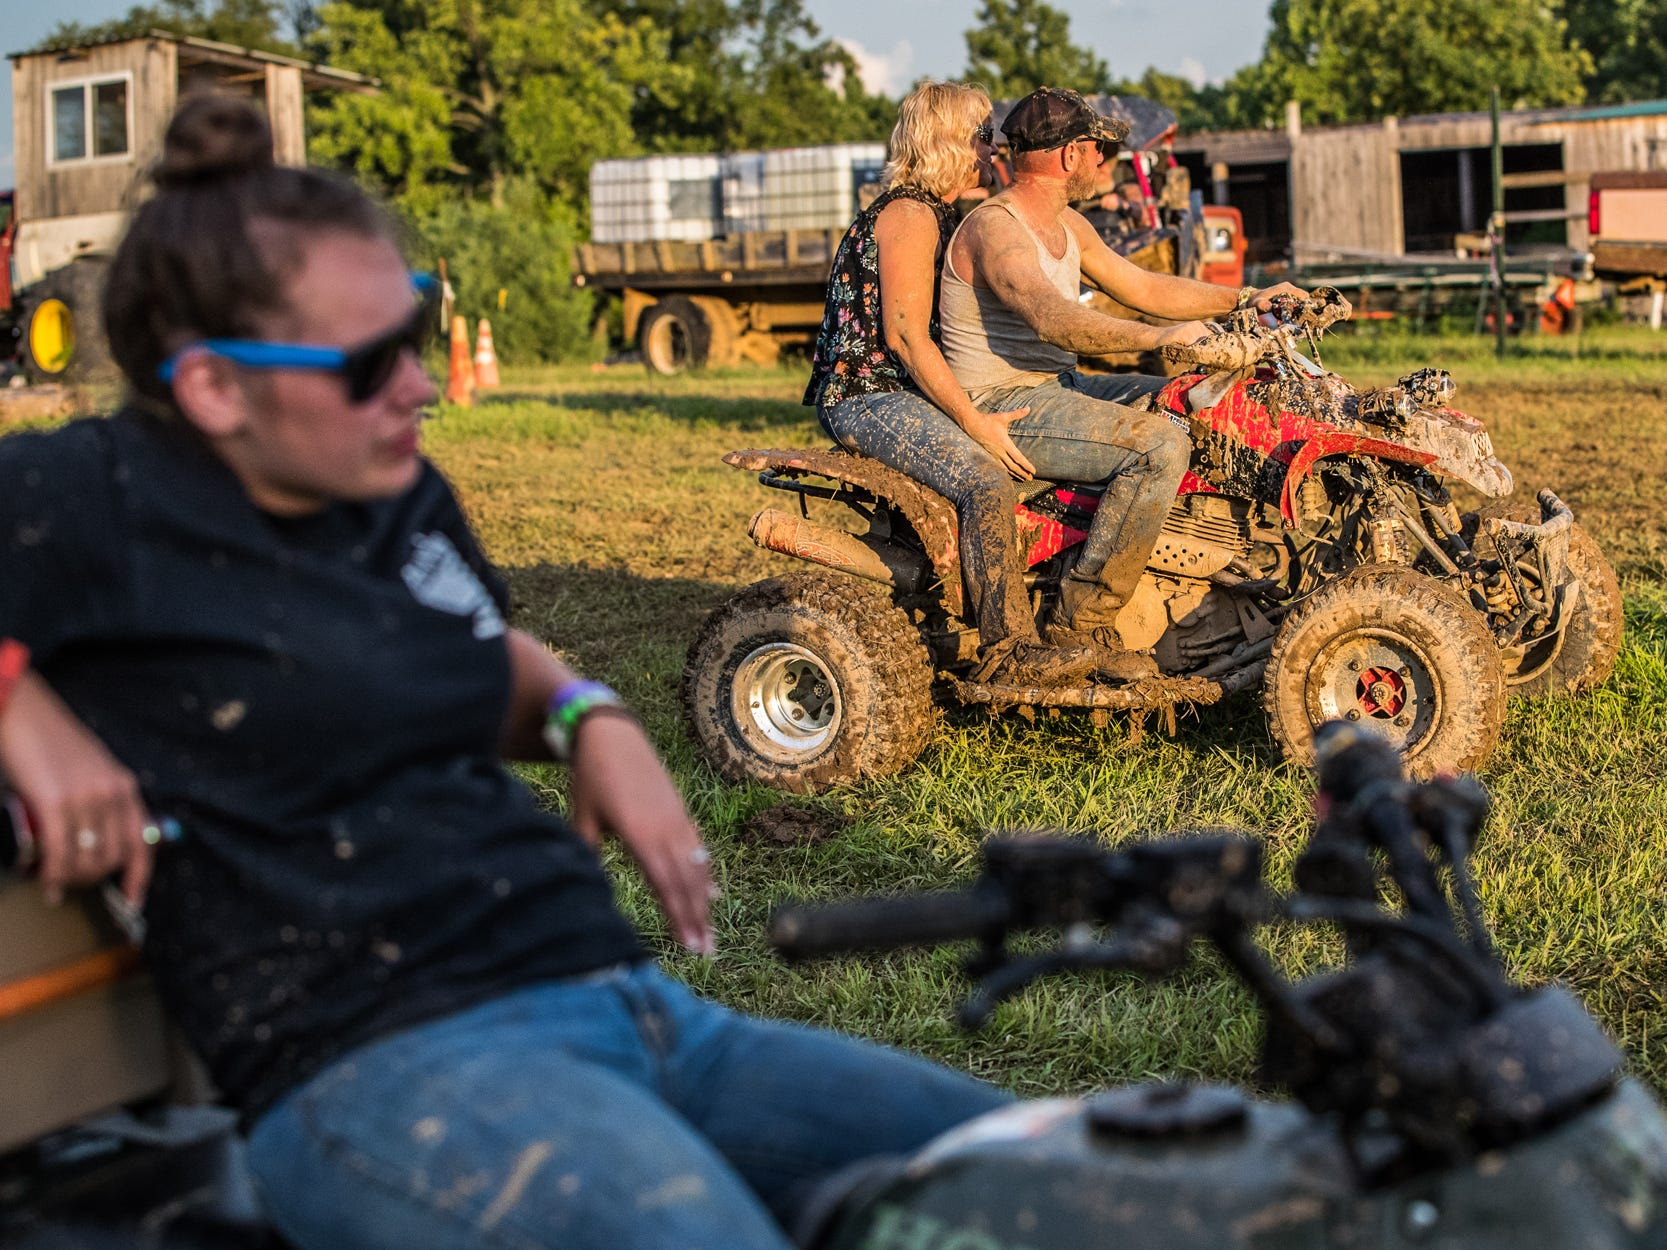 As the sun sets, ATV riders begin to exit the mud pits during the Redneck Rave at BlackSwan Mudpit in Medora, Ind., on Friday, July 20, 2018.